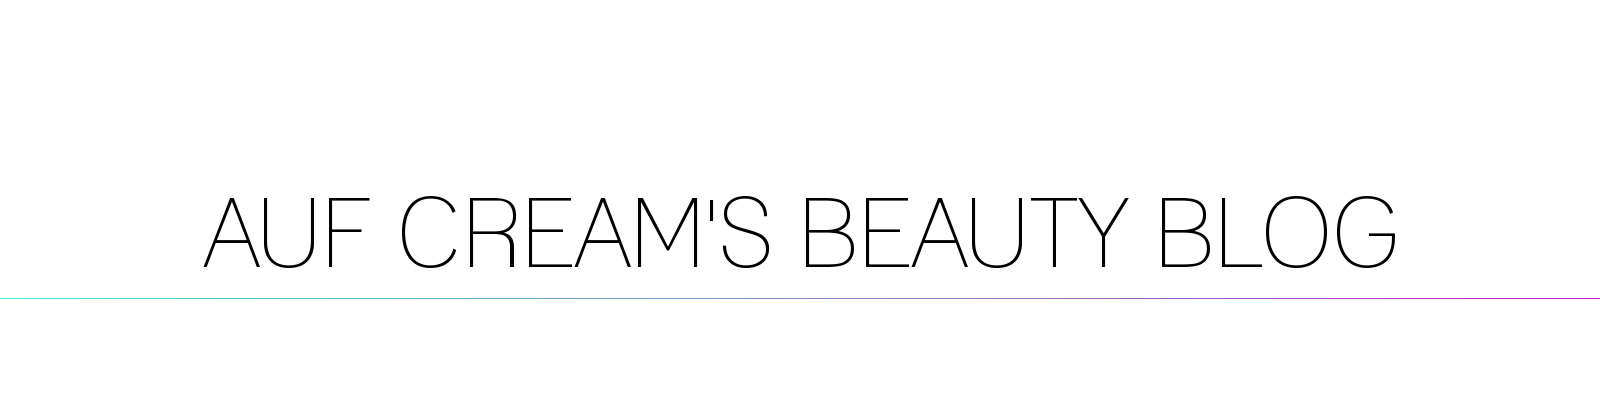 CBN_AUFCREAMSBEAUTYBLOG